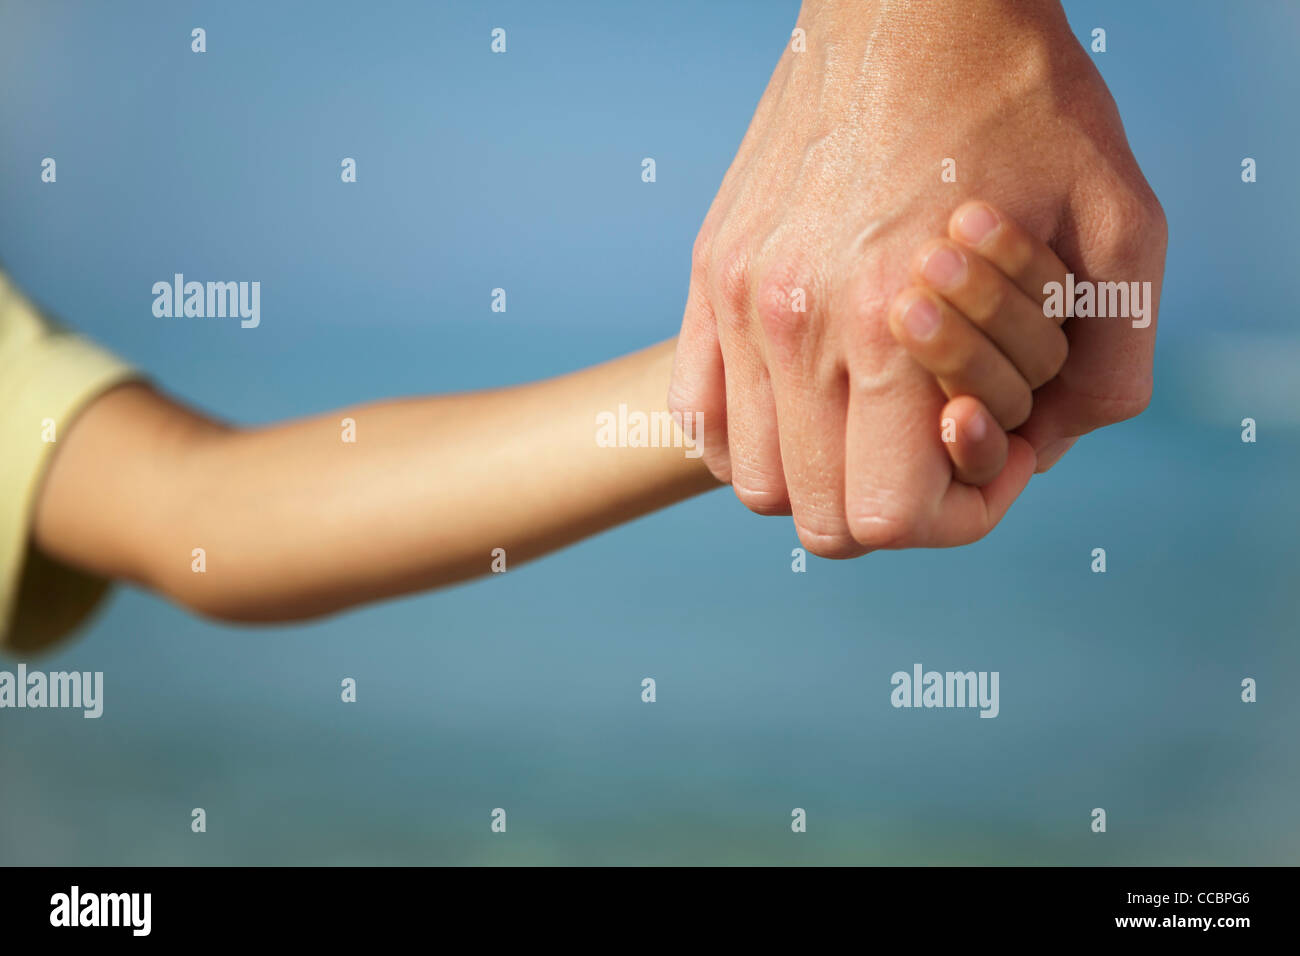 Adult holding child's hand, cropped - Stock Image